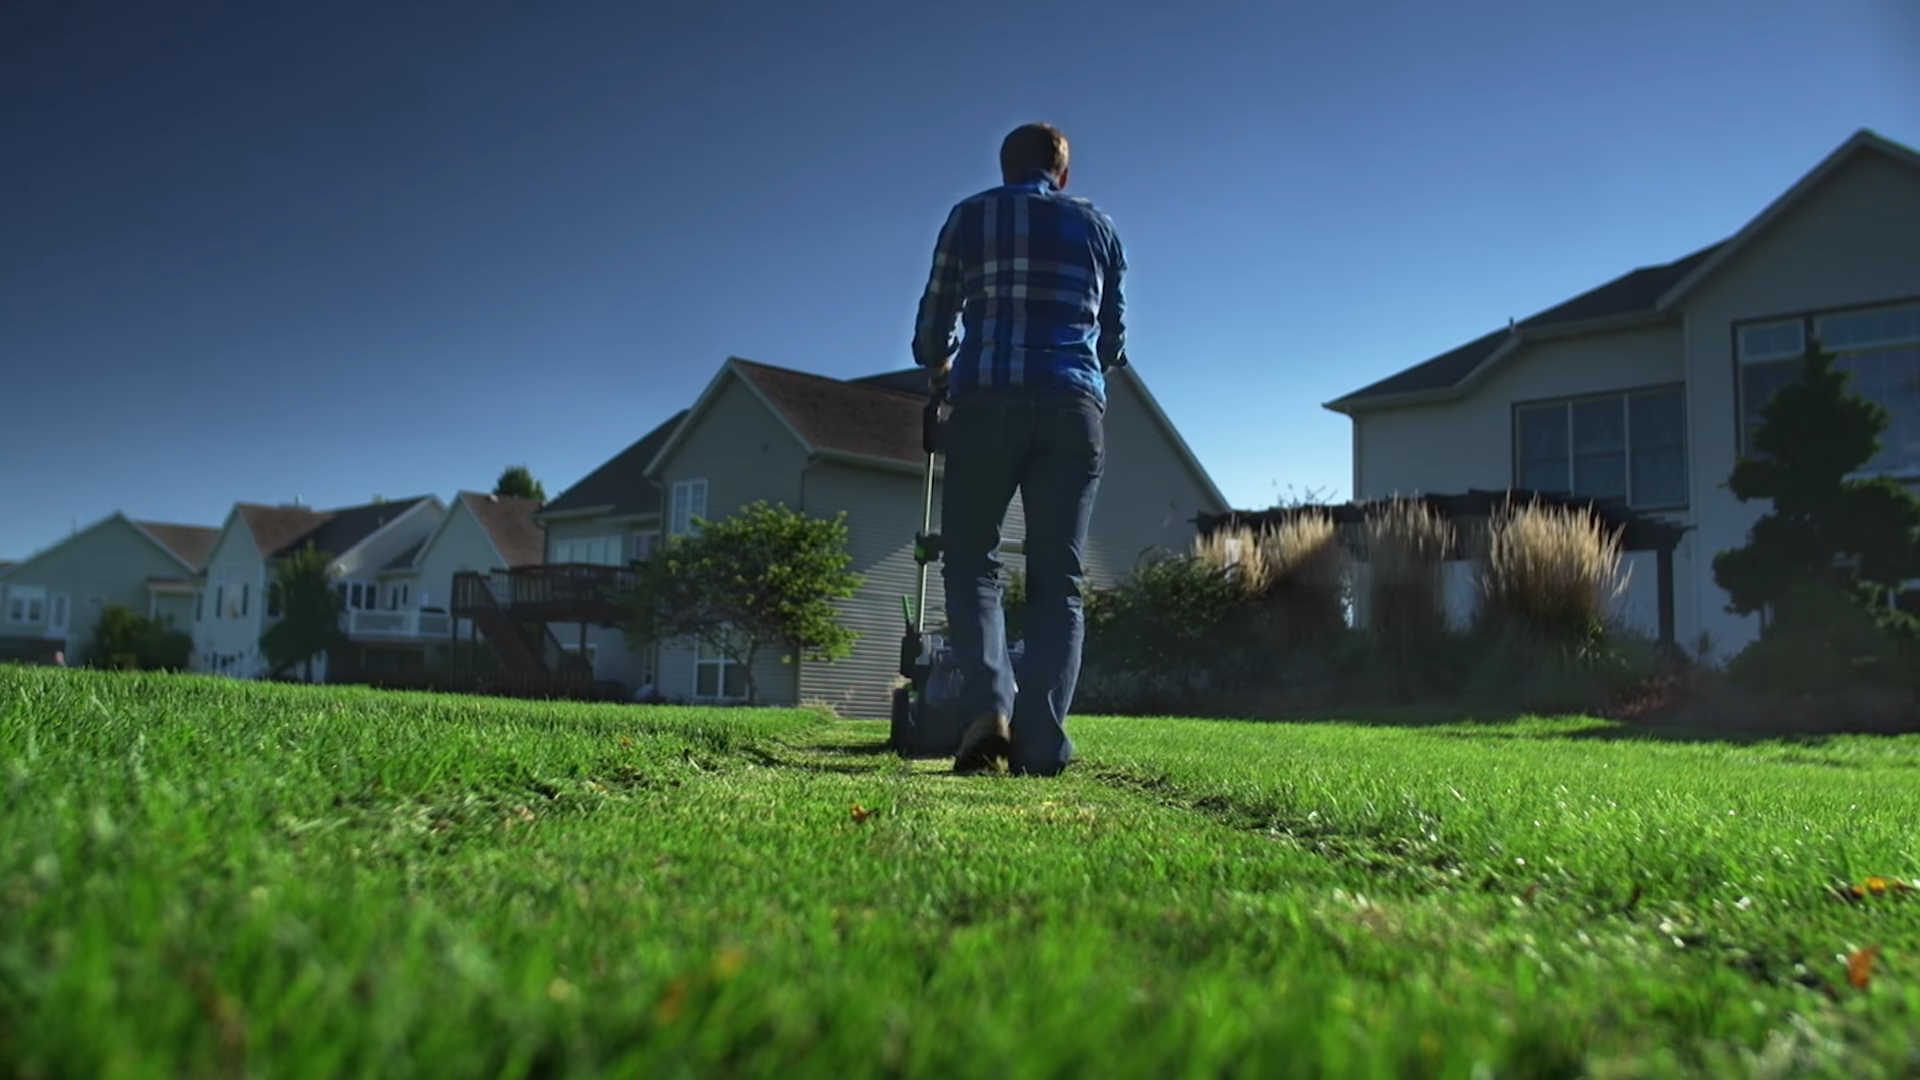 Best cordless lawn mowers